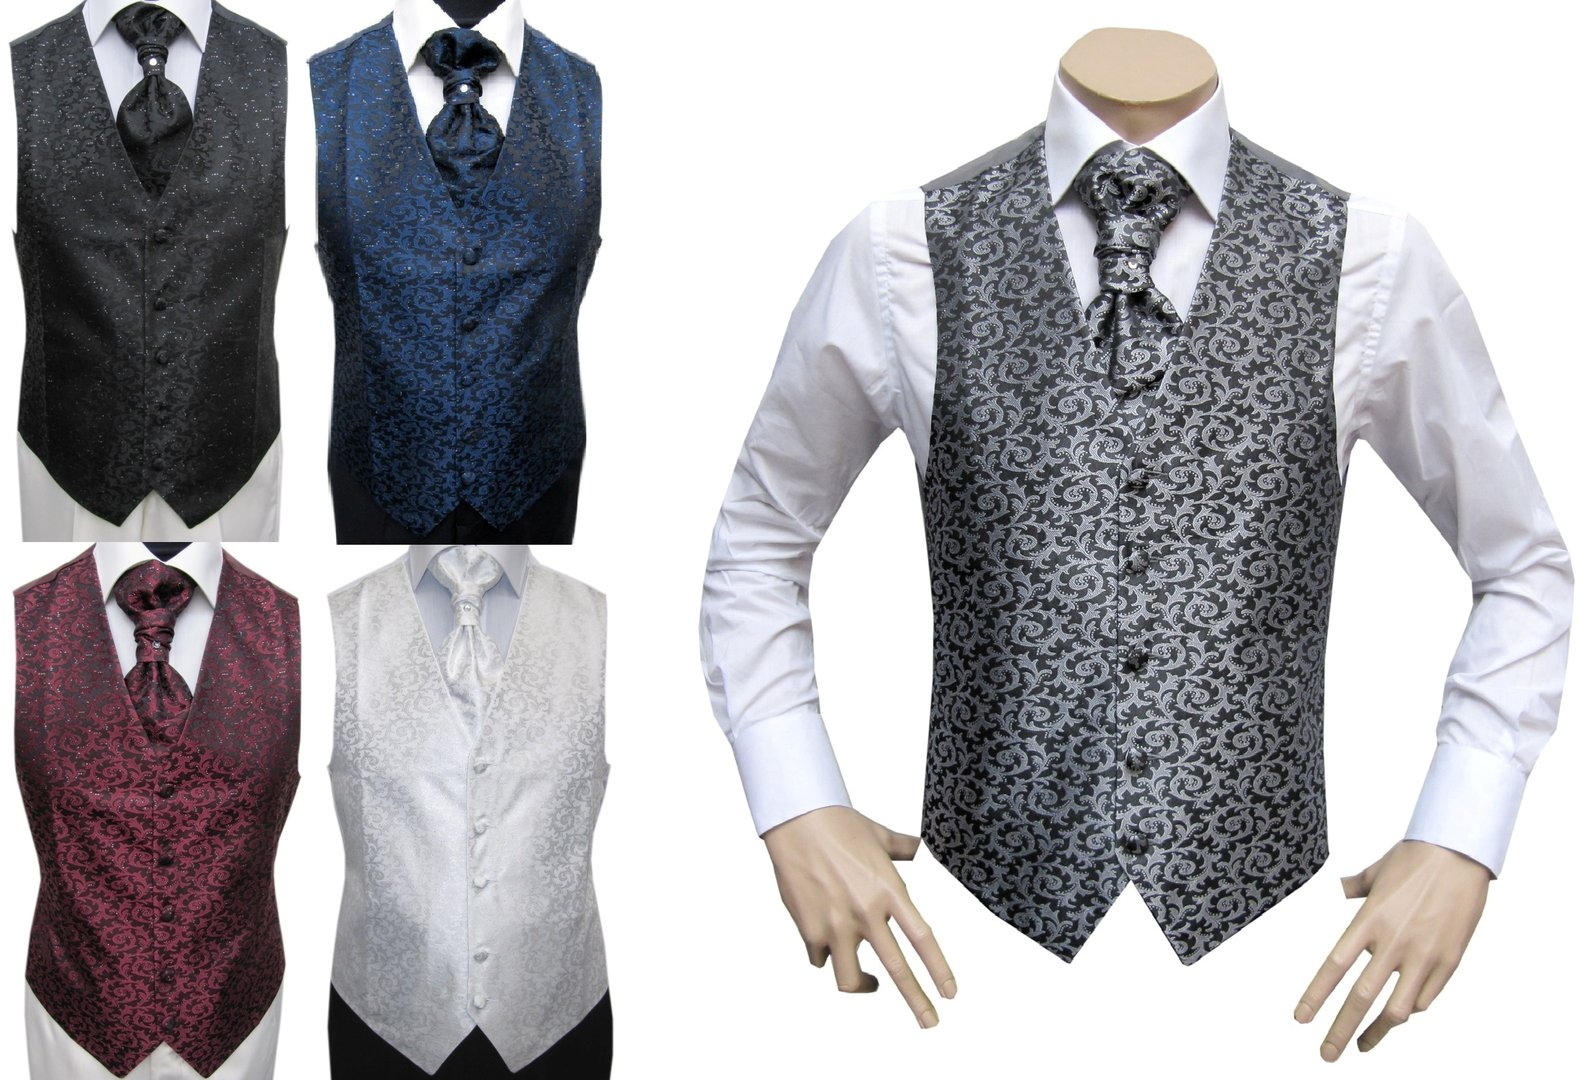 mariage homme gilet cravat gilet mmuga. Black Bedroom Furniture Sets. Home Design Ideas